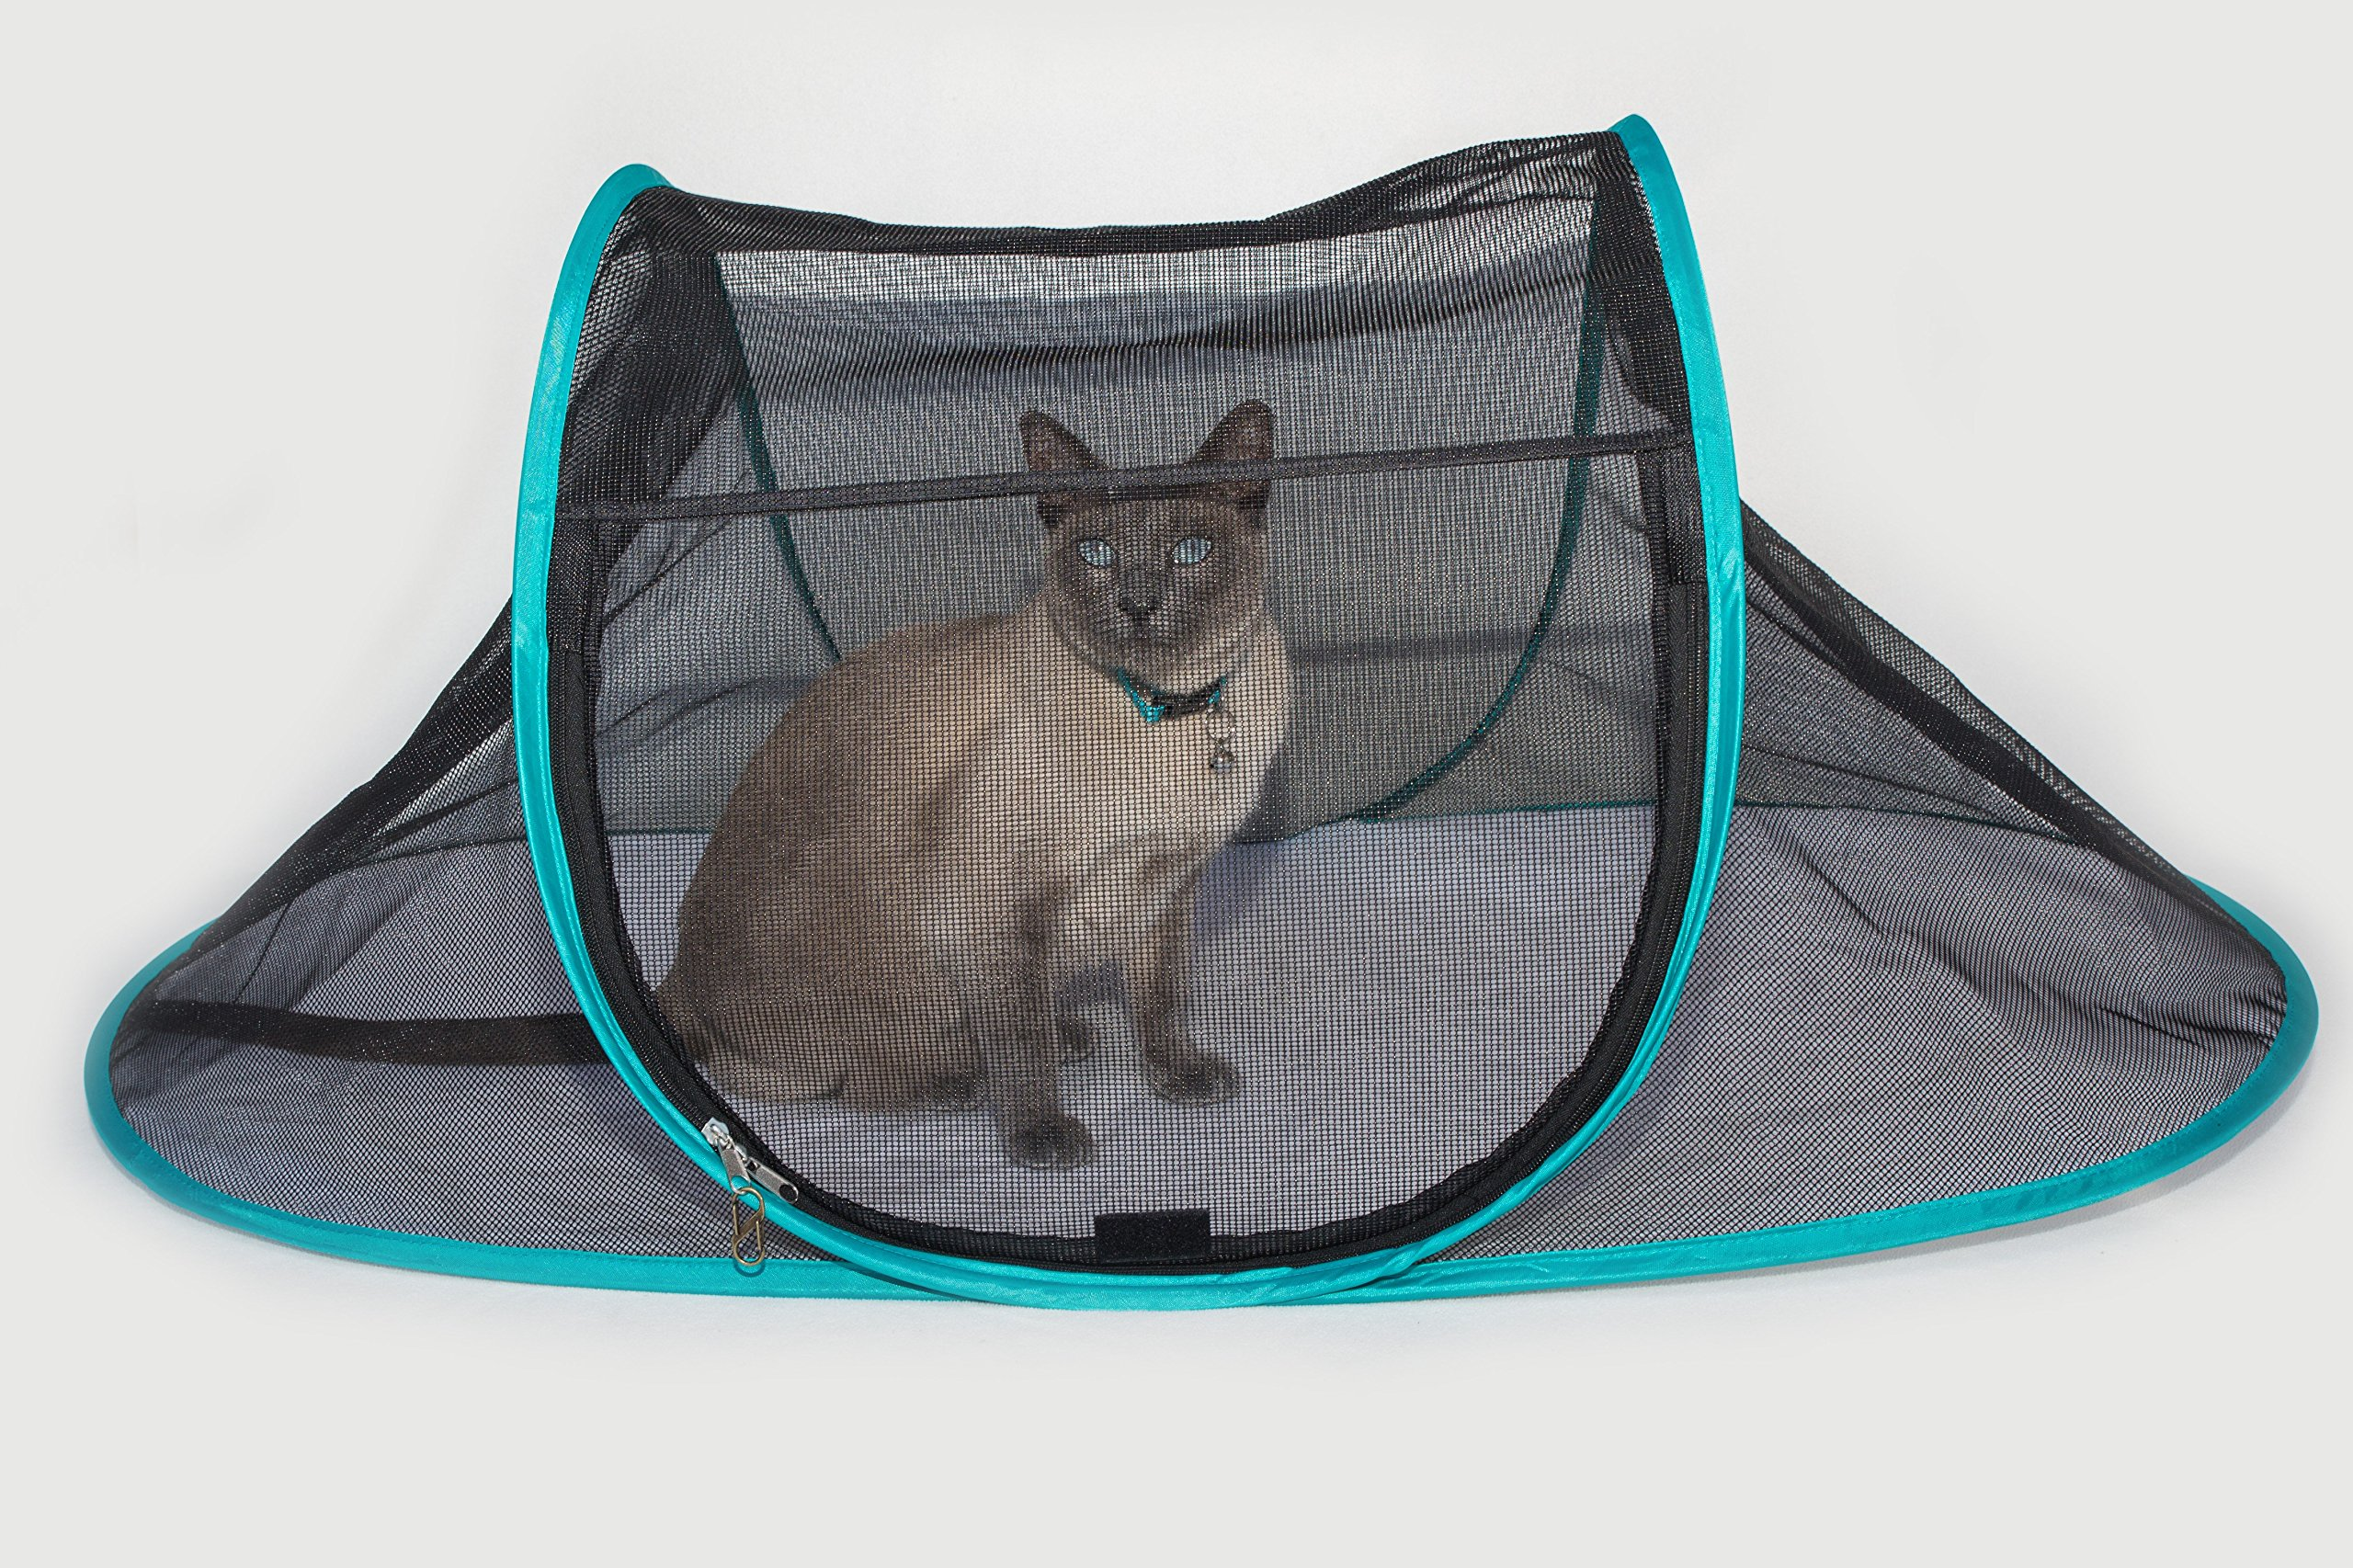 Nala and Company - The Cat House Outdoor Pet Enclosure for Indoor Cats - Portable, View, Pop Up Playhouse Tent for Deck, Patio, Porch, Yard, Balcony & RV Travel - Includes Storage Pouch